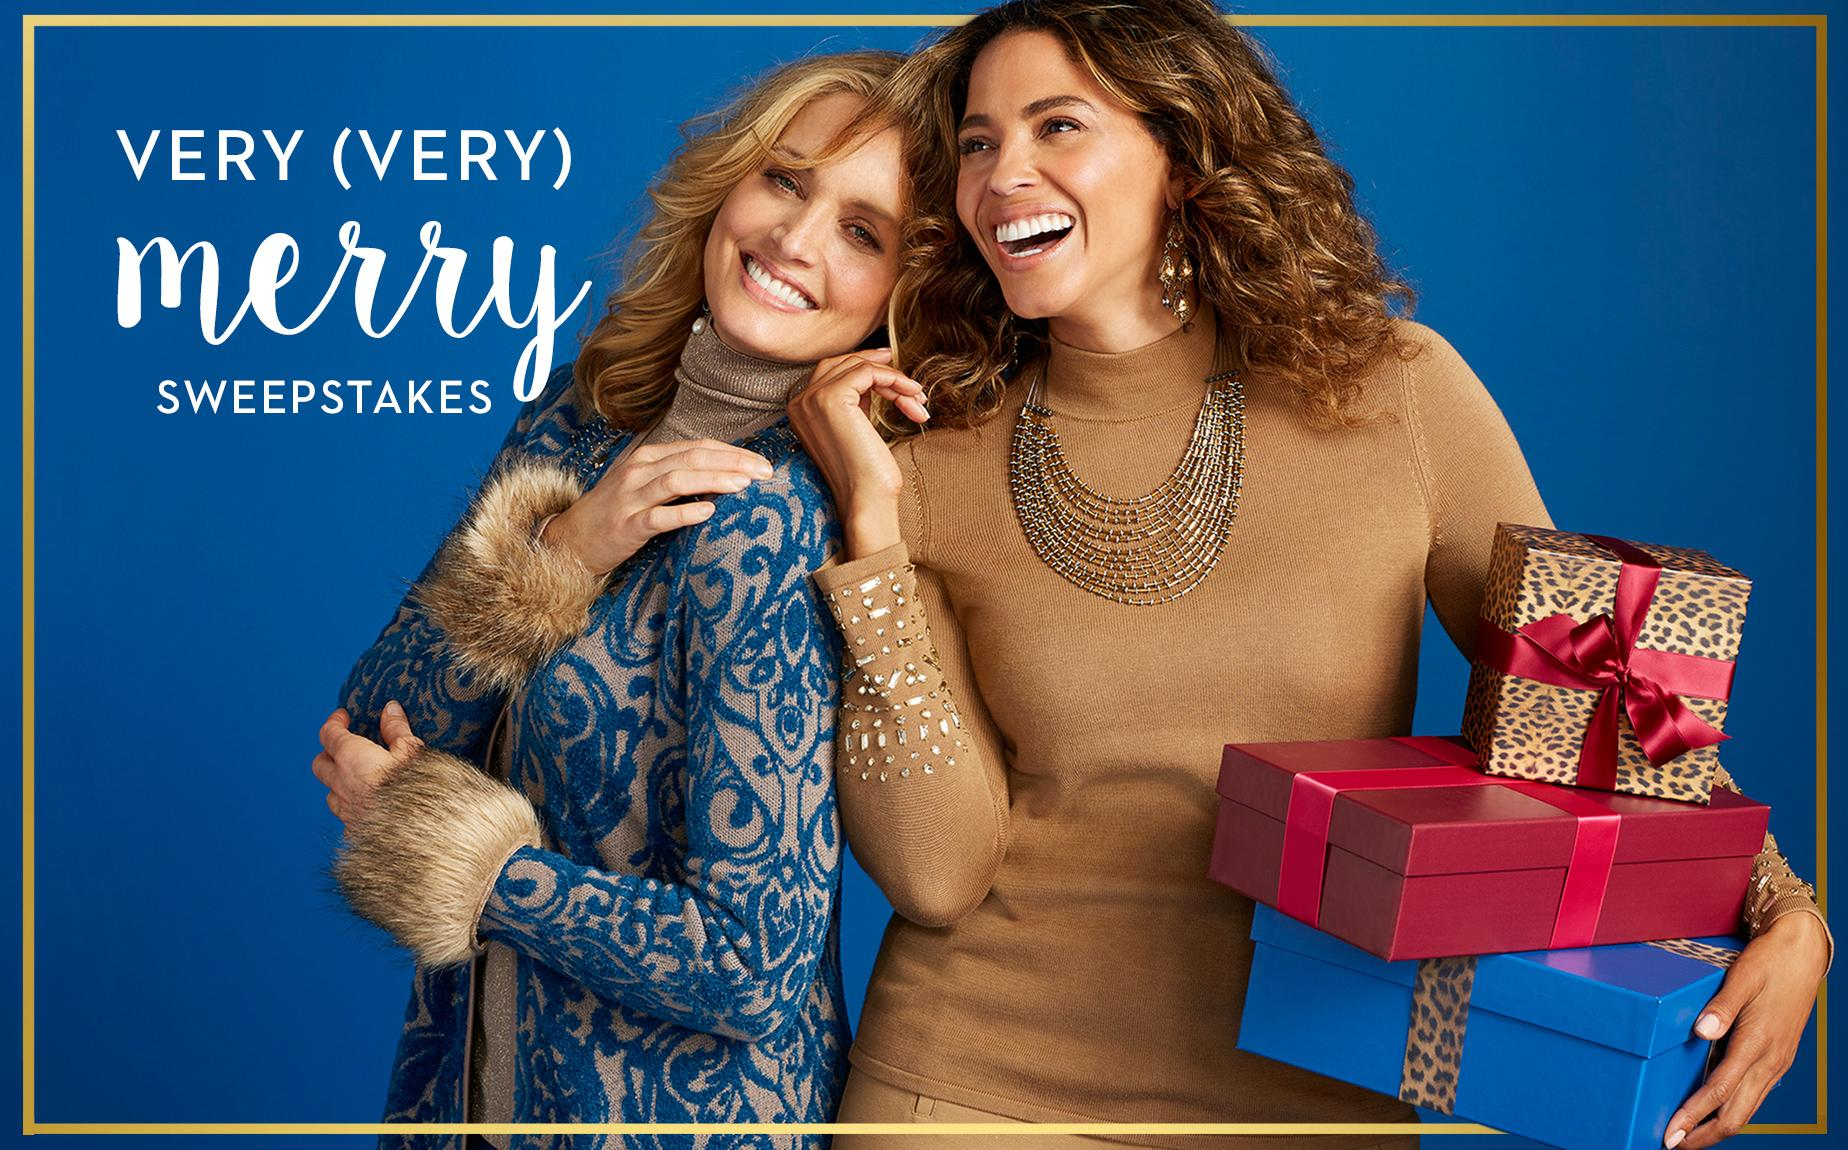 Chico's is giving three lucky winners a $500 Chico's Gift Card. What's merrier than giving (and getting) gifts this season?A $500 Chico's holiday shopping spree! So, make your list. Check it twice. And then enter our Very (Very) Merry Sweepstakes for a chance to win